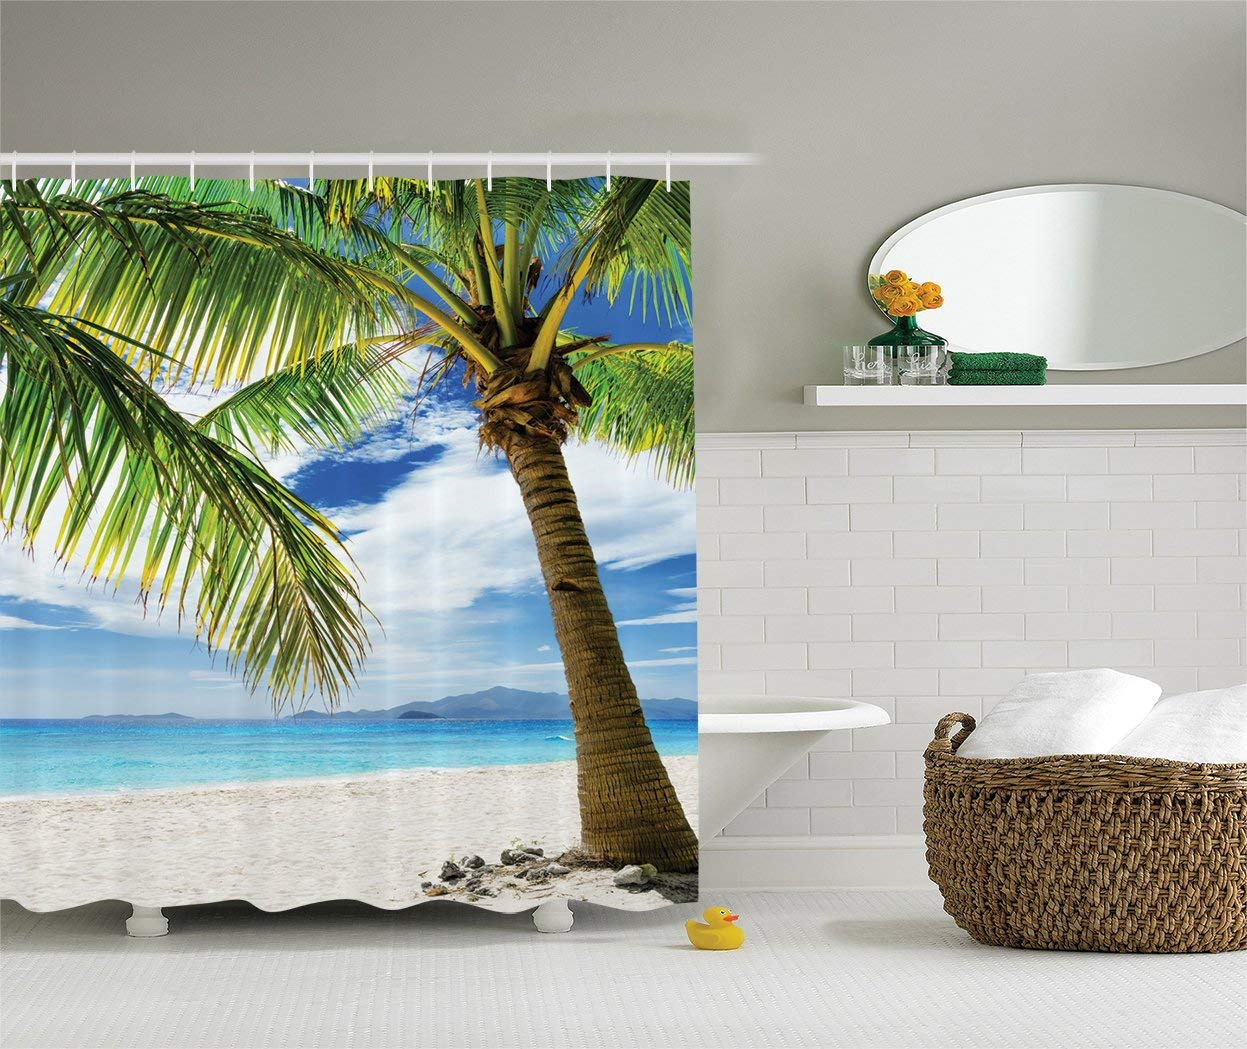 Buy philippines beach and get free shipping on AliExpress.com bccba7b658bd